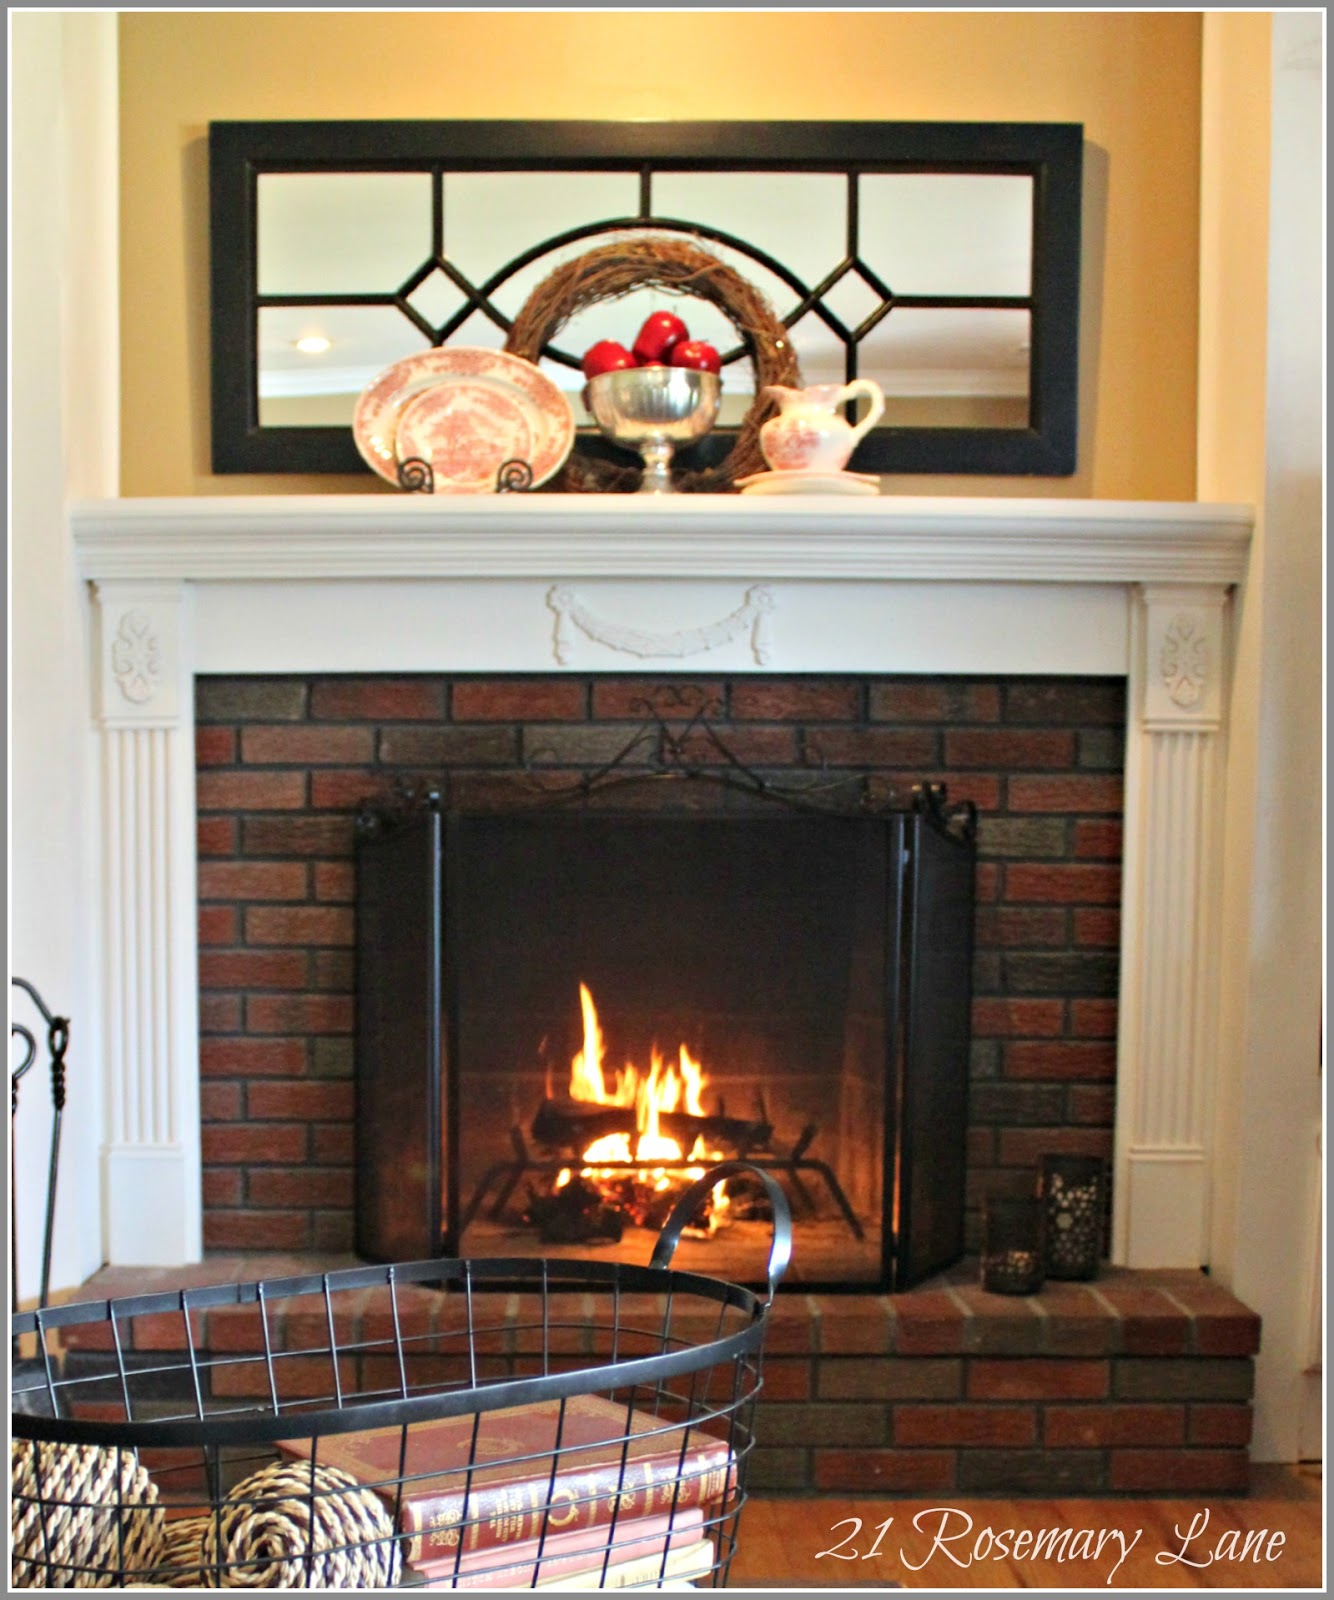 21 Rosemary Lane: Our New Fireplace Mantel ~ Thank You Mr ...